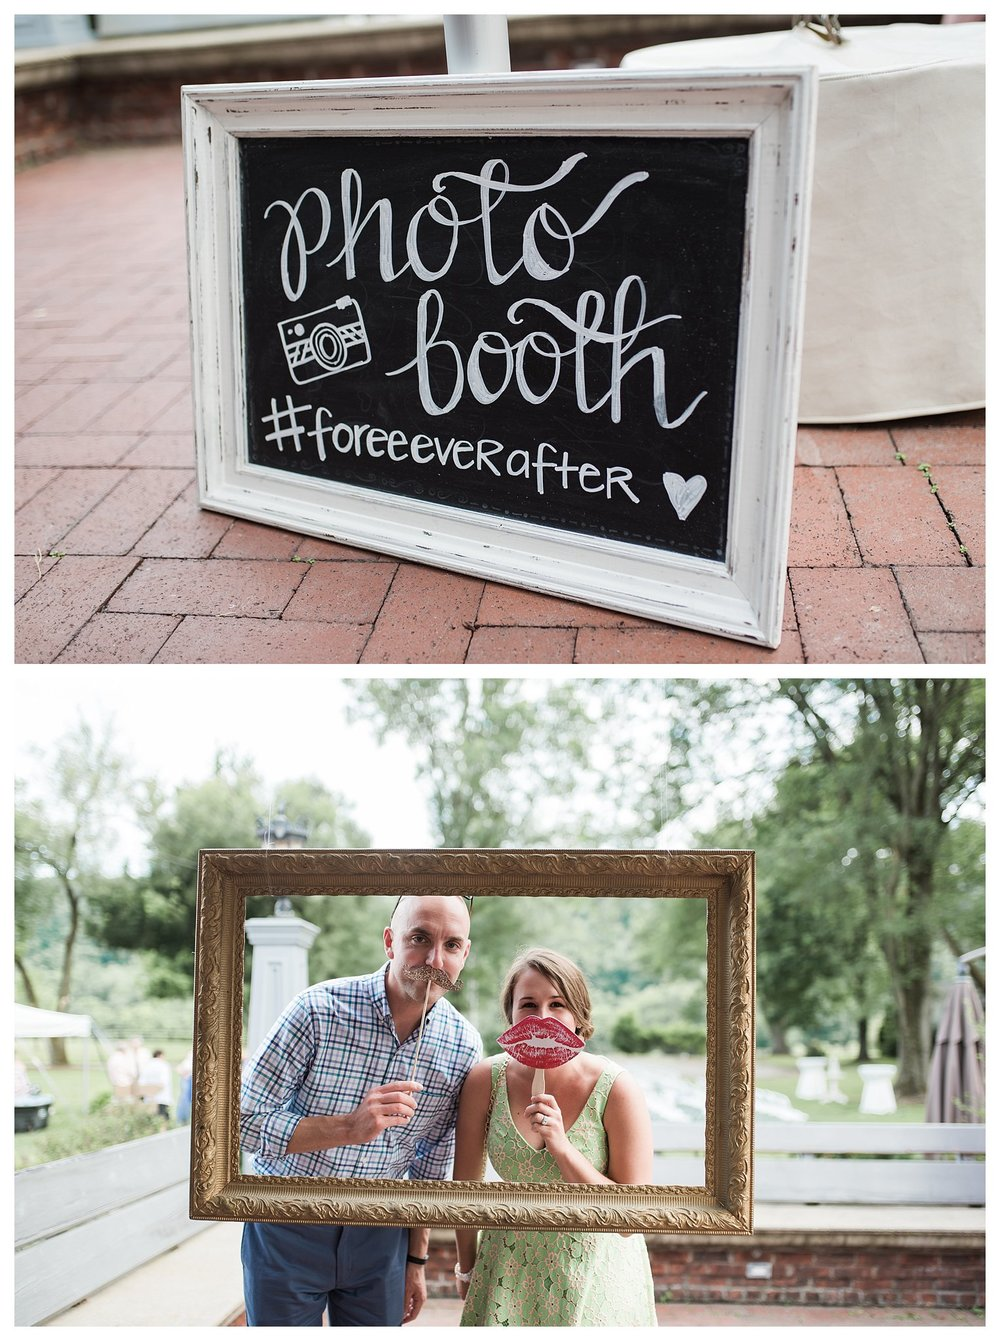 richwood-on-the-river-everleigh-photography-roby-and-tabitha-foree-wedding-77